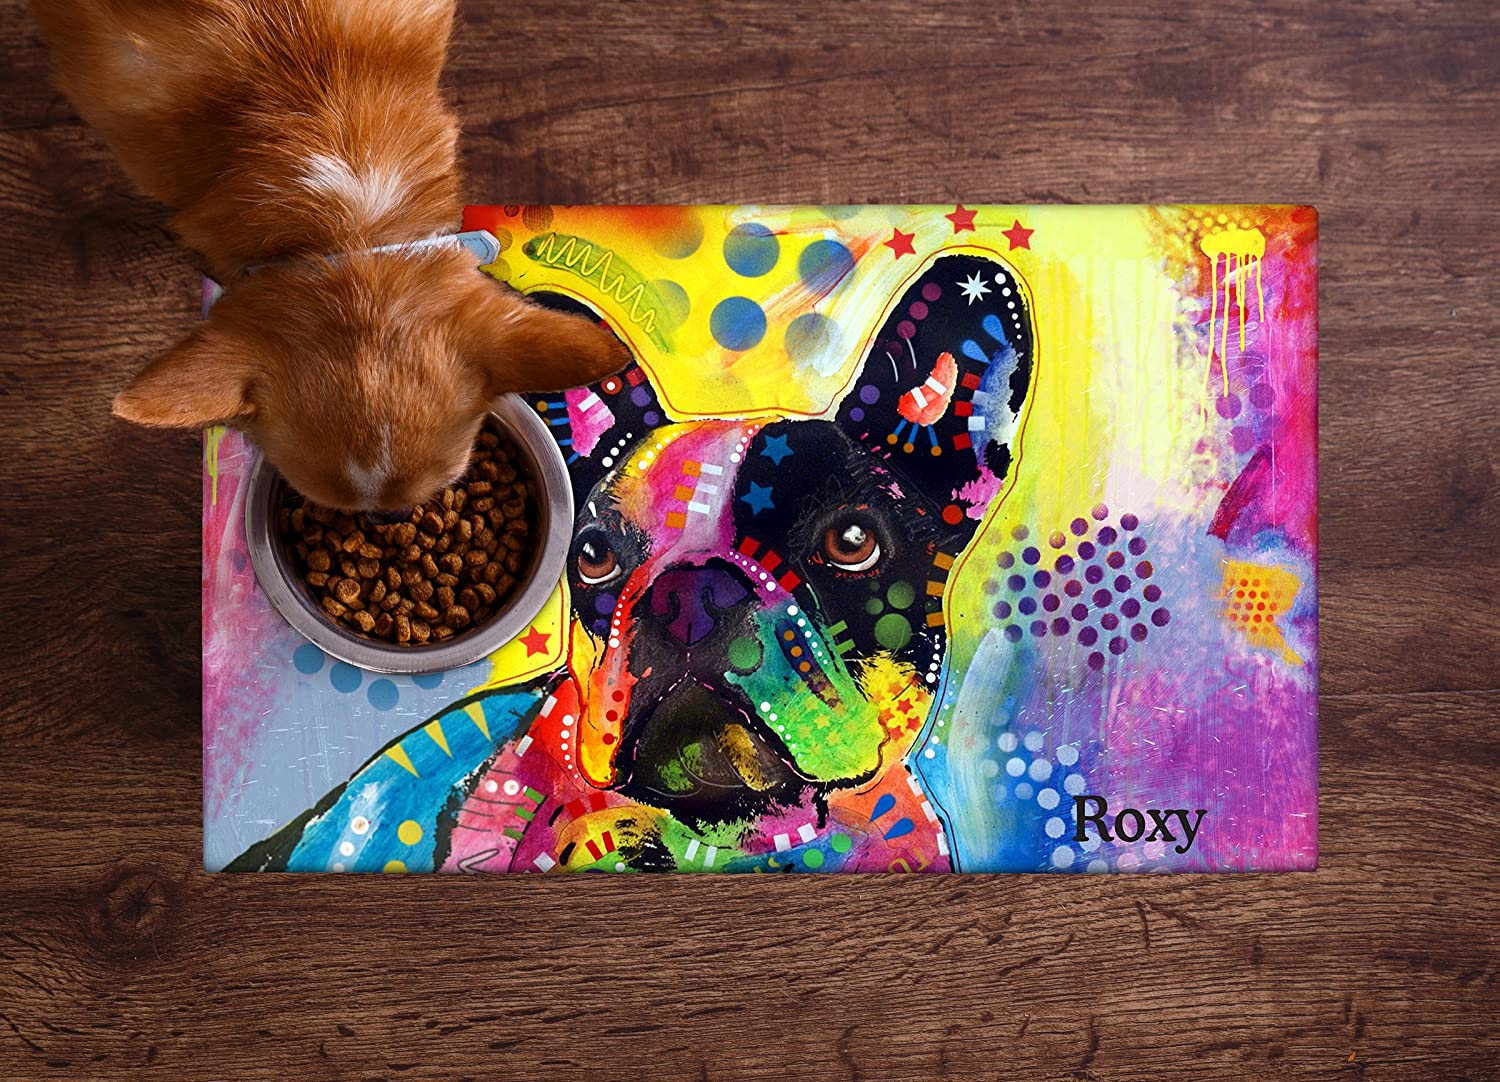 Drymate Personalized Pet Placemat, Dean Russo Designs, Custom Dog Food Mat, Cat Food Mat, Zorb-Tech Anti Flow Technology for Surface Protection (USA Made) (Small - 12